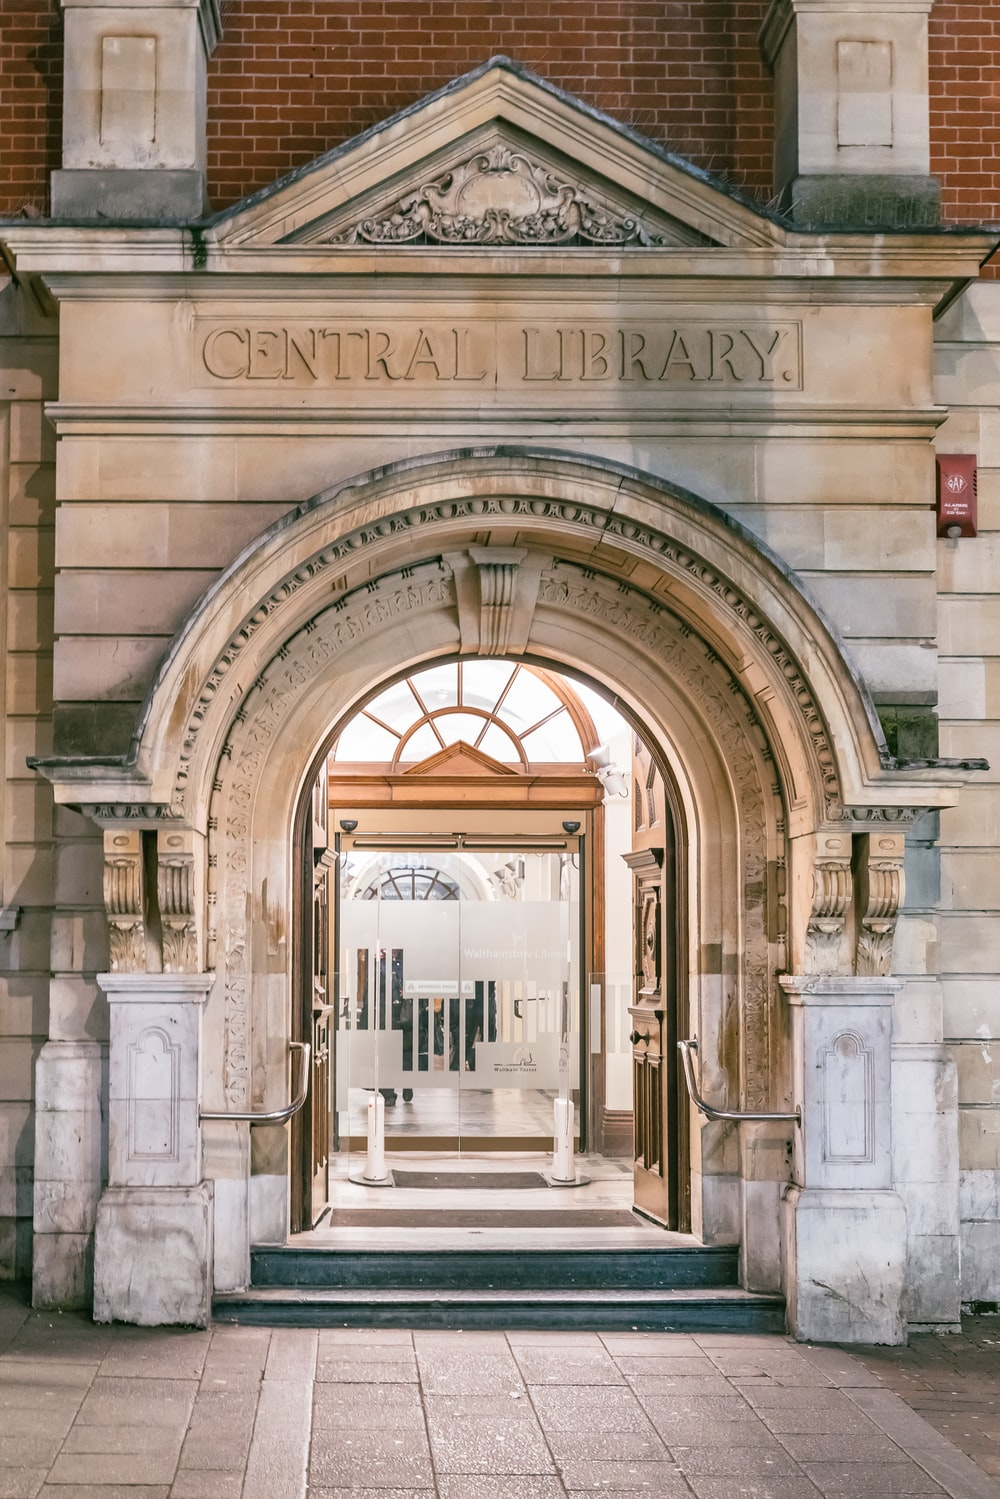 Central Library building